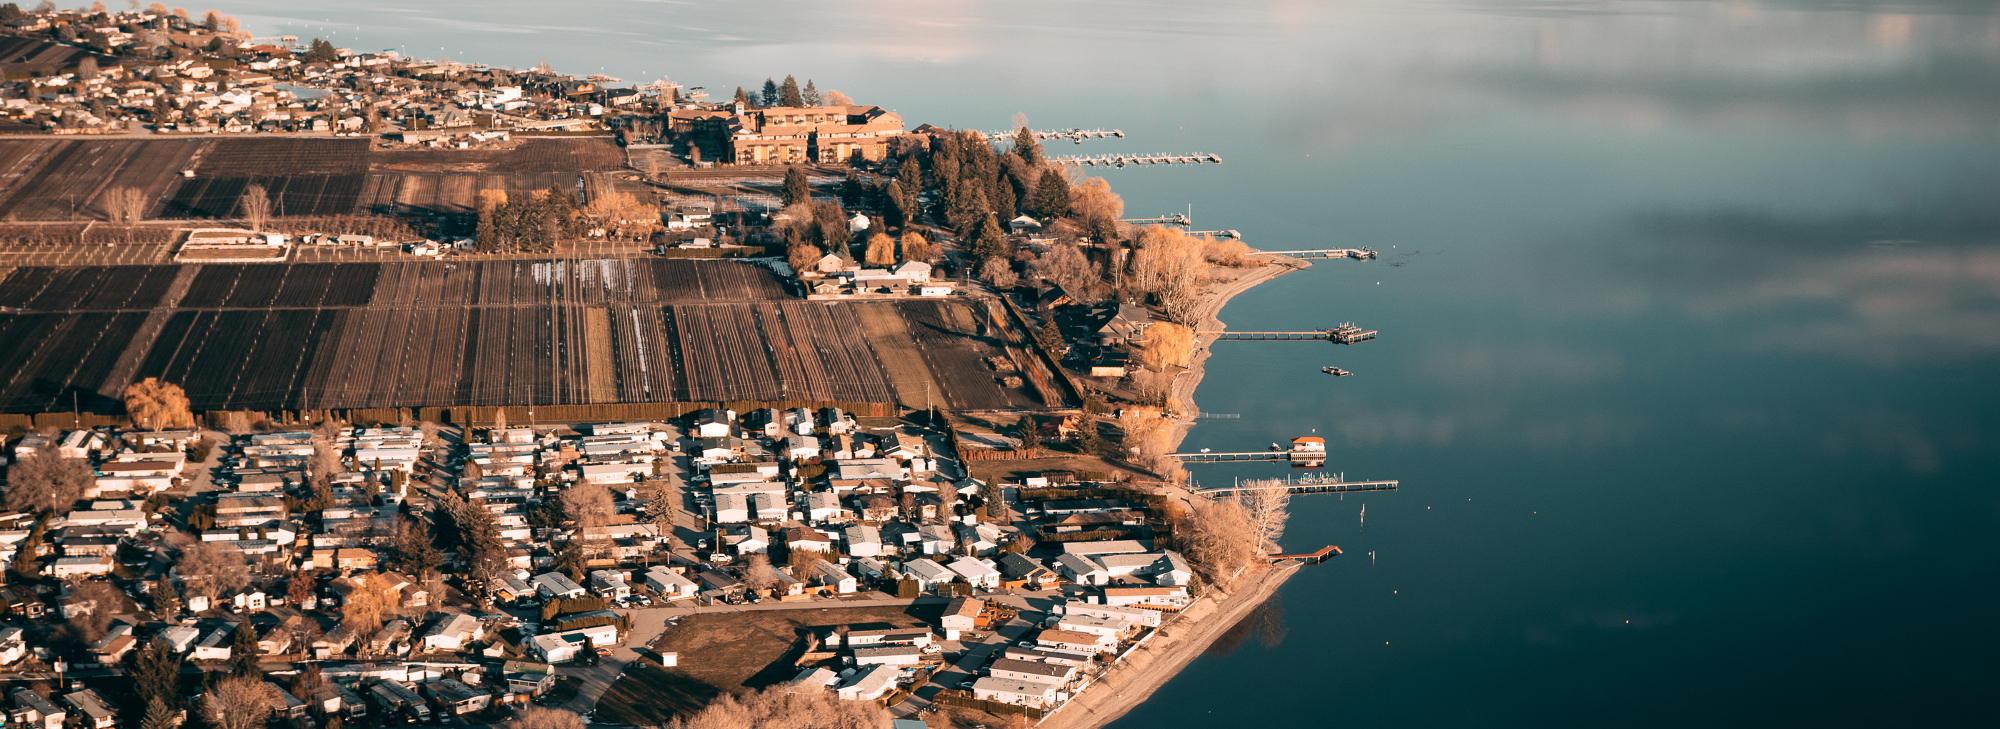 helicopter tours kelowna with Ikon Adventures Wine Tours Okanagan on Westside Bench Kelowna Wine Tourglass At Qg likewise Hanger Blog 3 likewise Tours furthermore Charter flights cambridge bay nu additionally Charter flights gjoa haven nu.